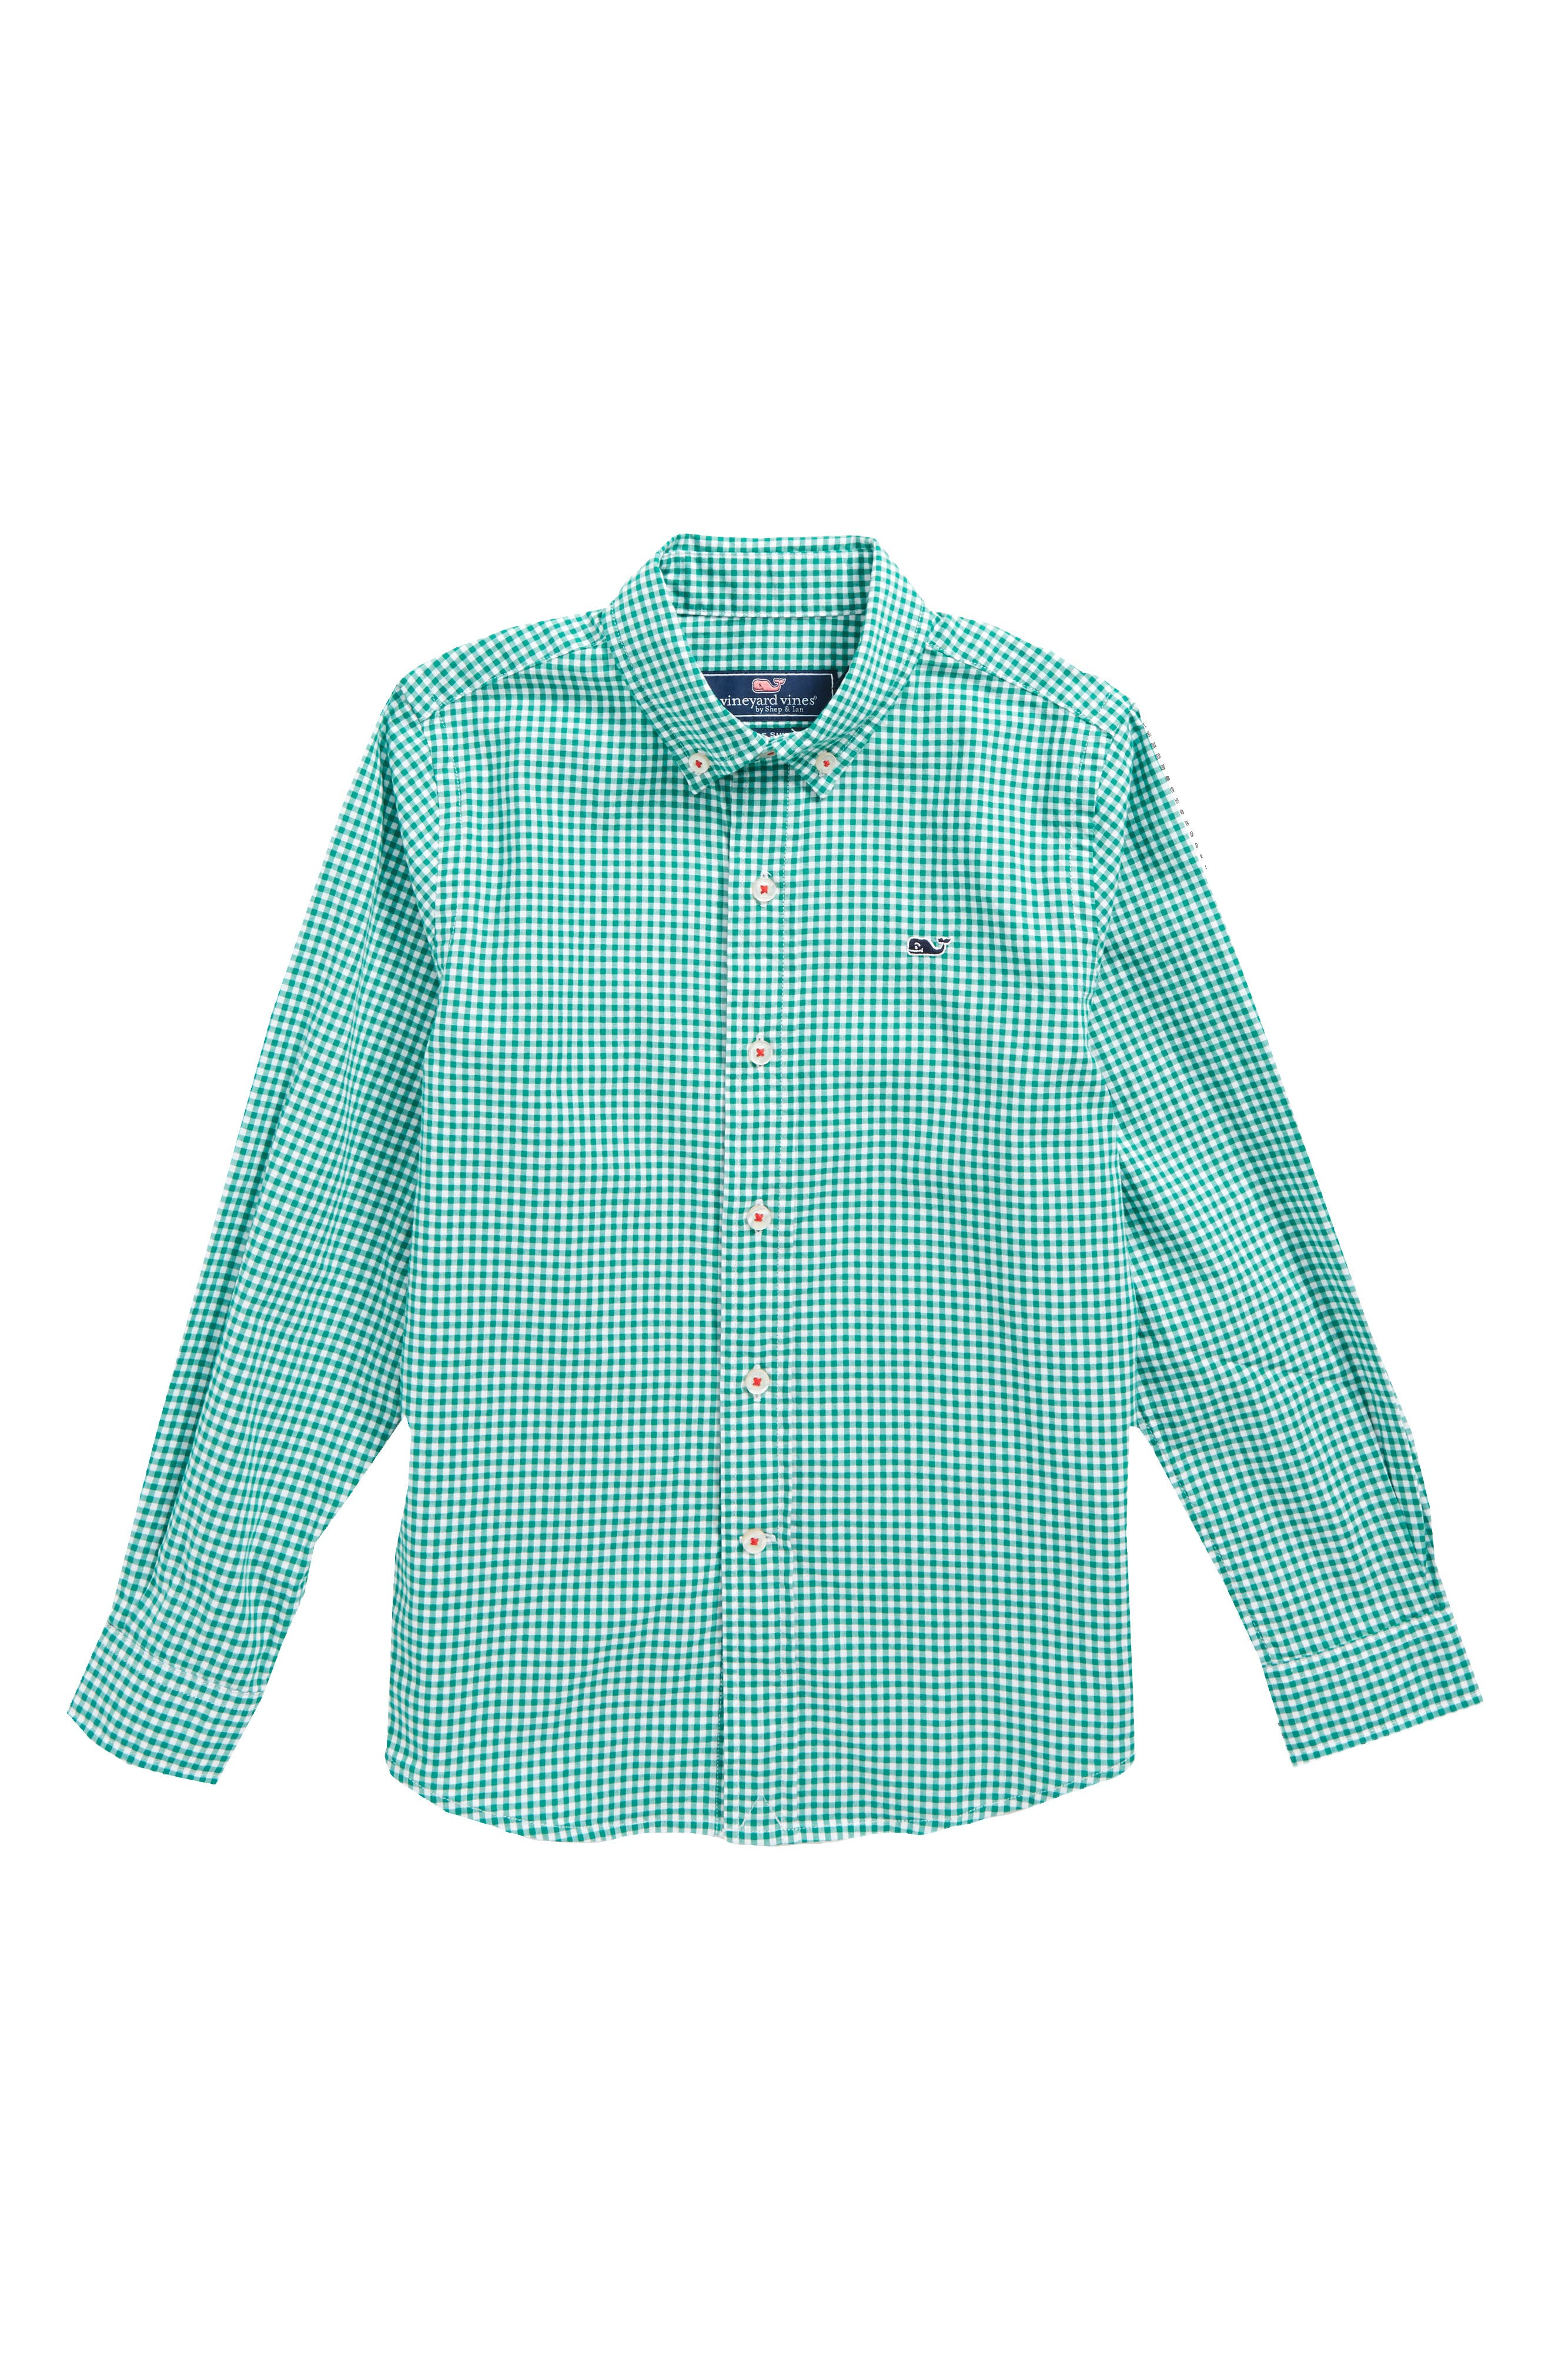 Main Image - vineyard vines Old Town Gingham Whale Shirt (Toddler Boys, Little Boys & Big Boys)